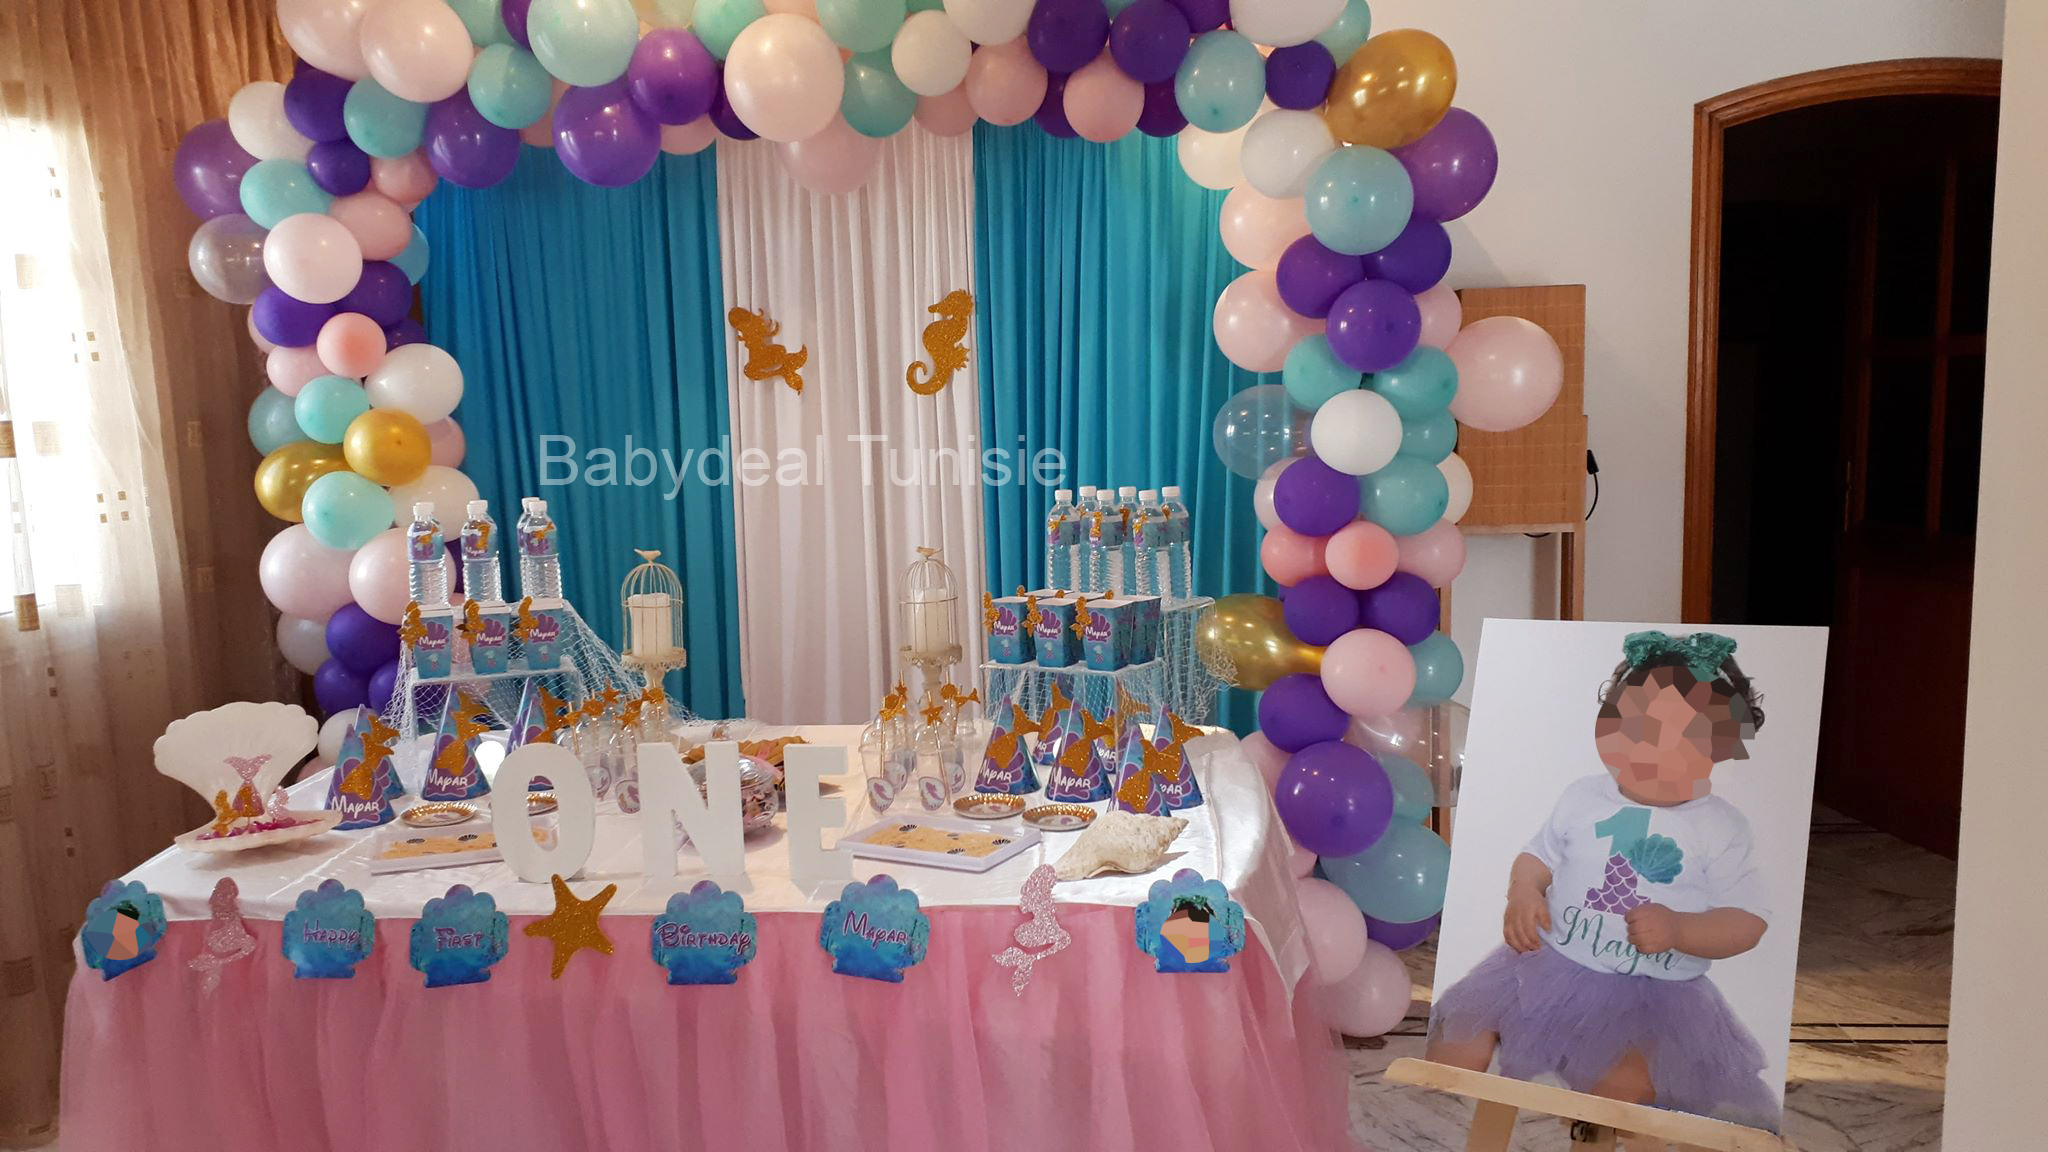 mermaid-birthday-babydeal